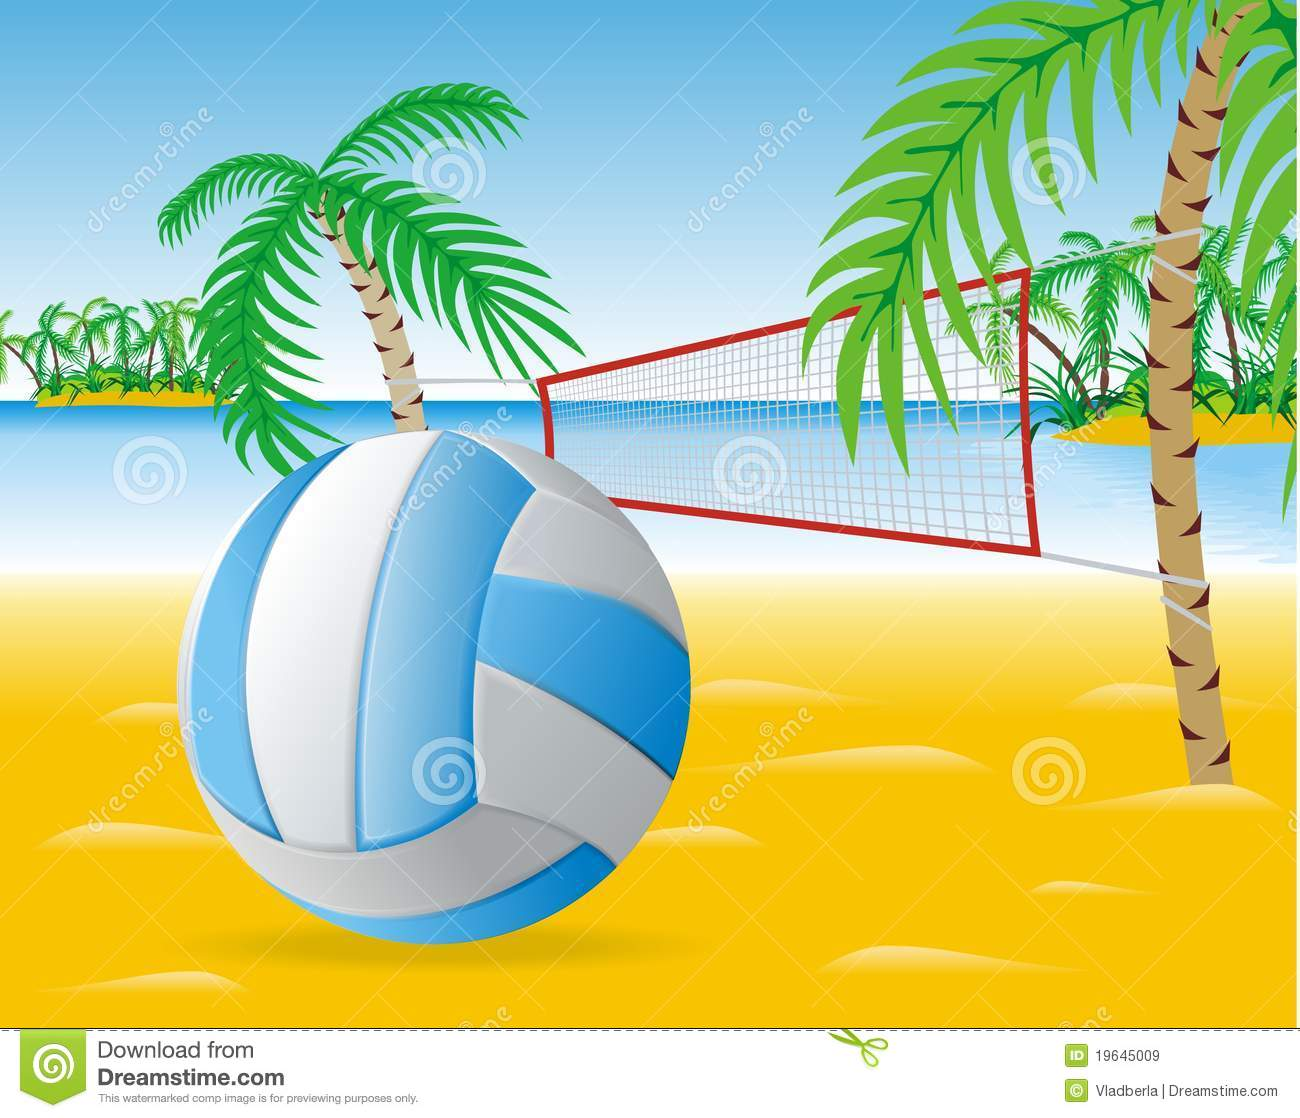 Beach Volleyball Clipart Beach Volleyball